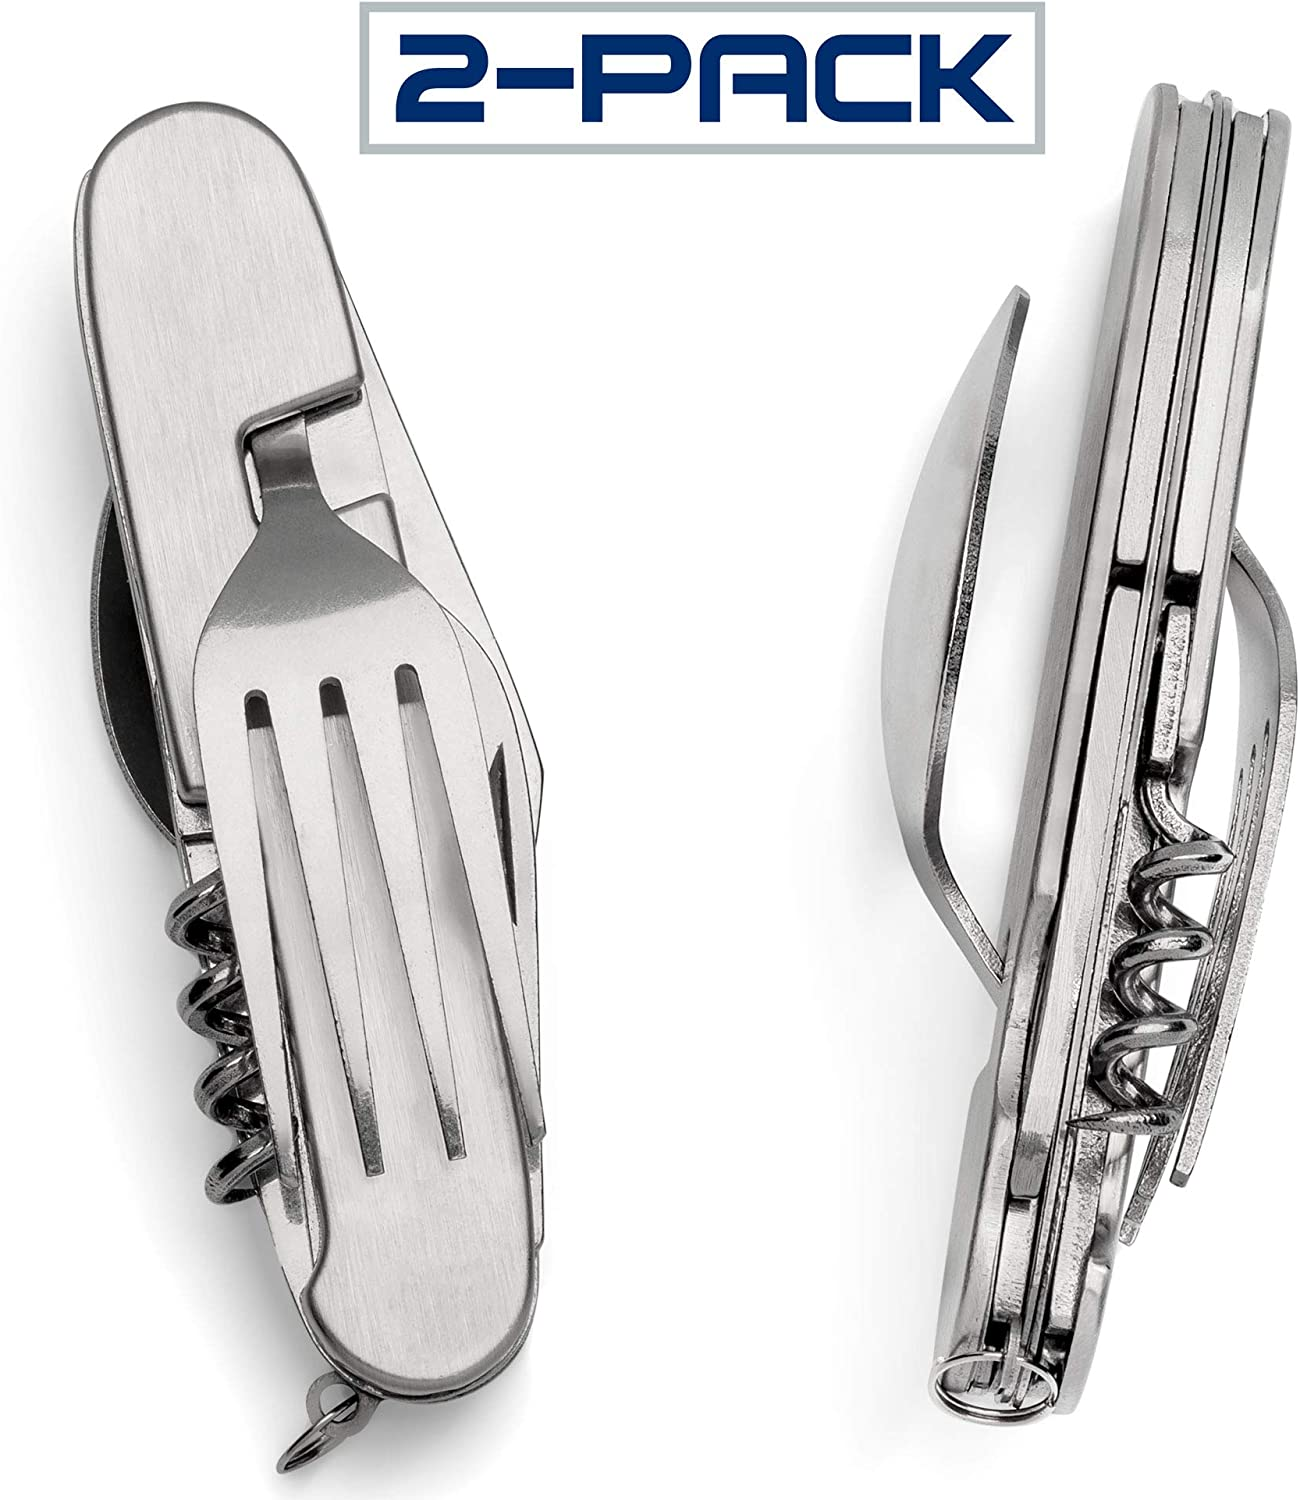 Typhon East 2 Pack Multi-Function 6 in 1 Fork Spoon Opener and Knife Combination for Hiking, Survival, and Camping